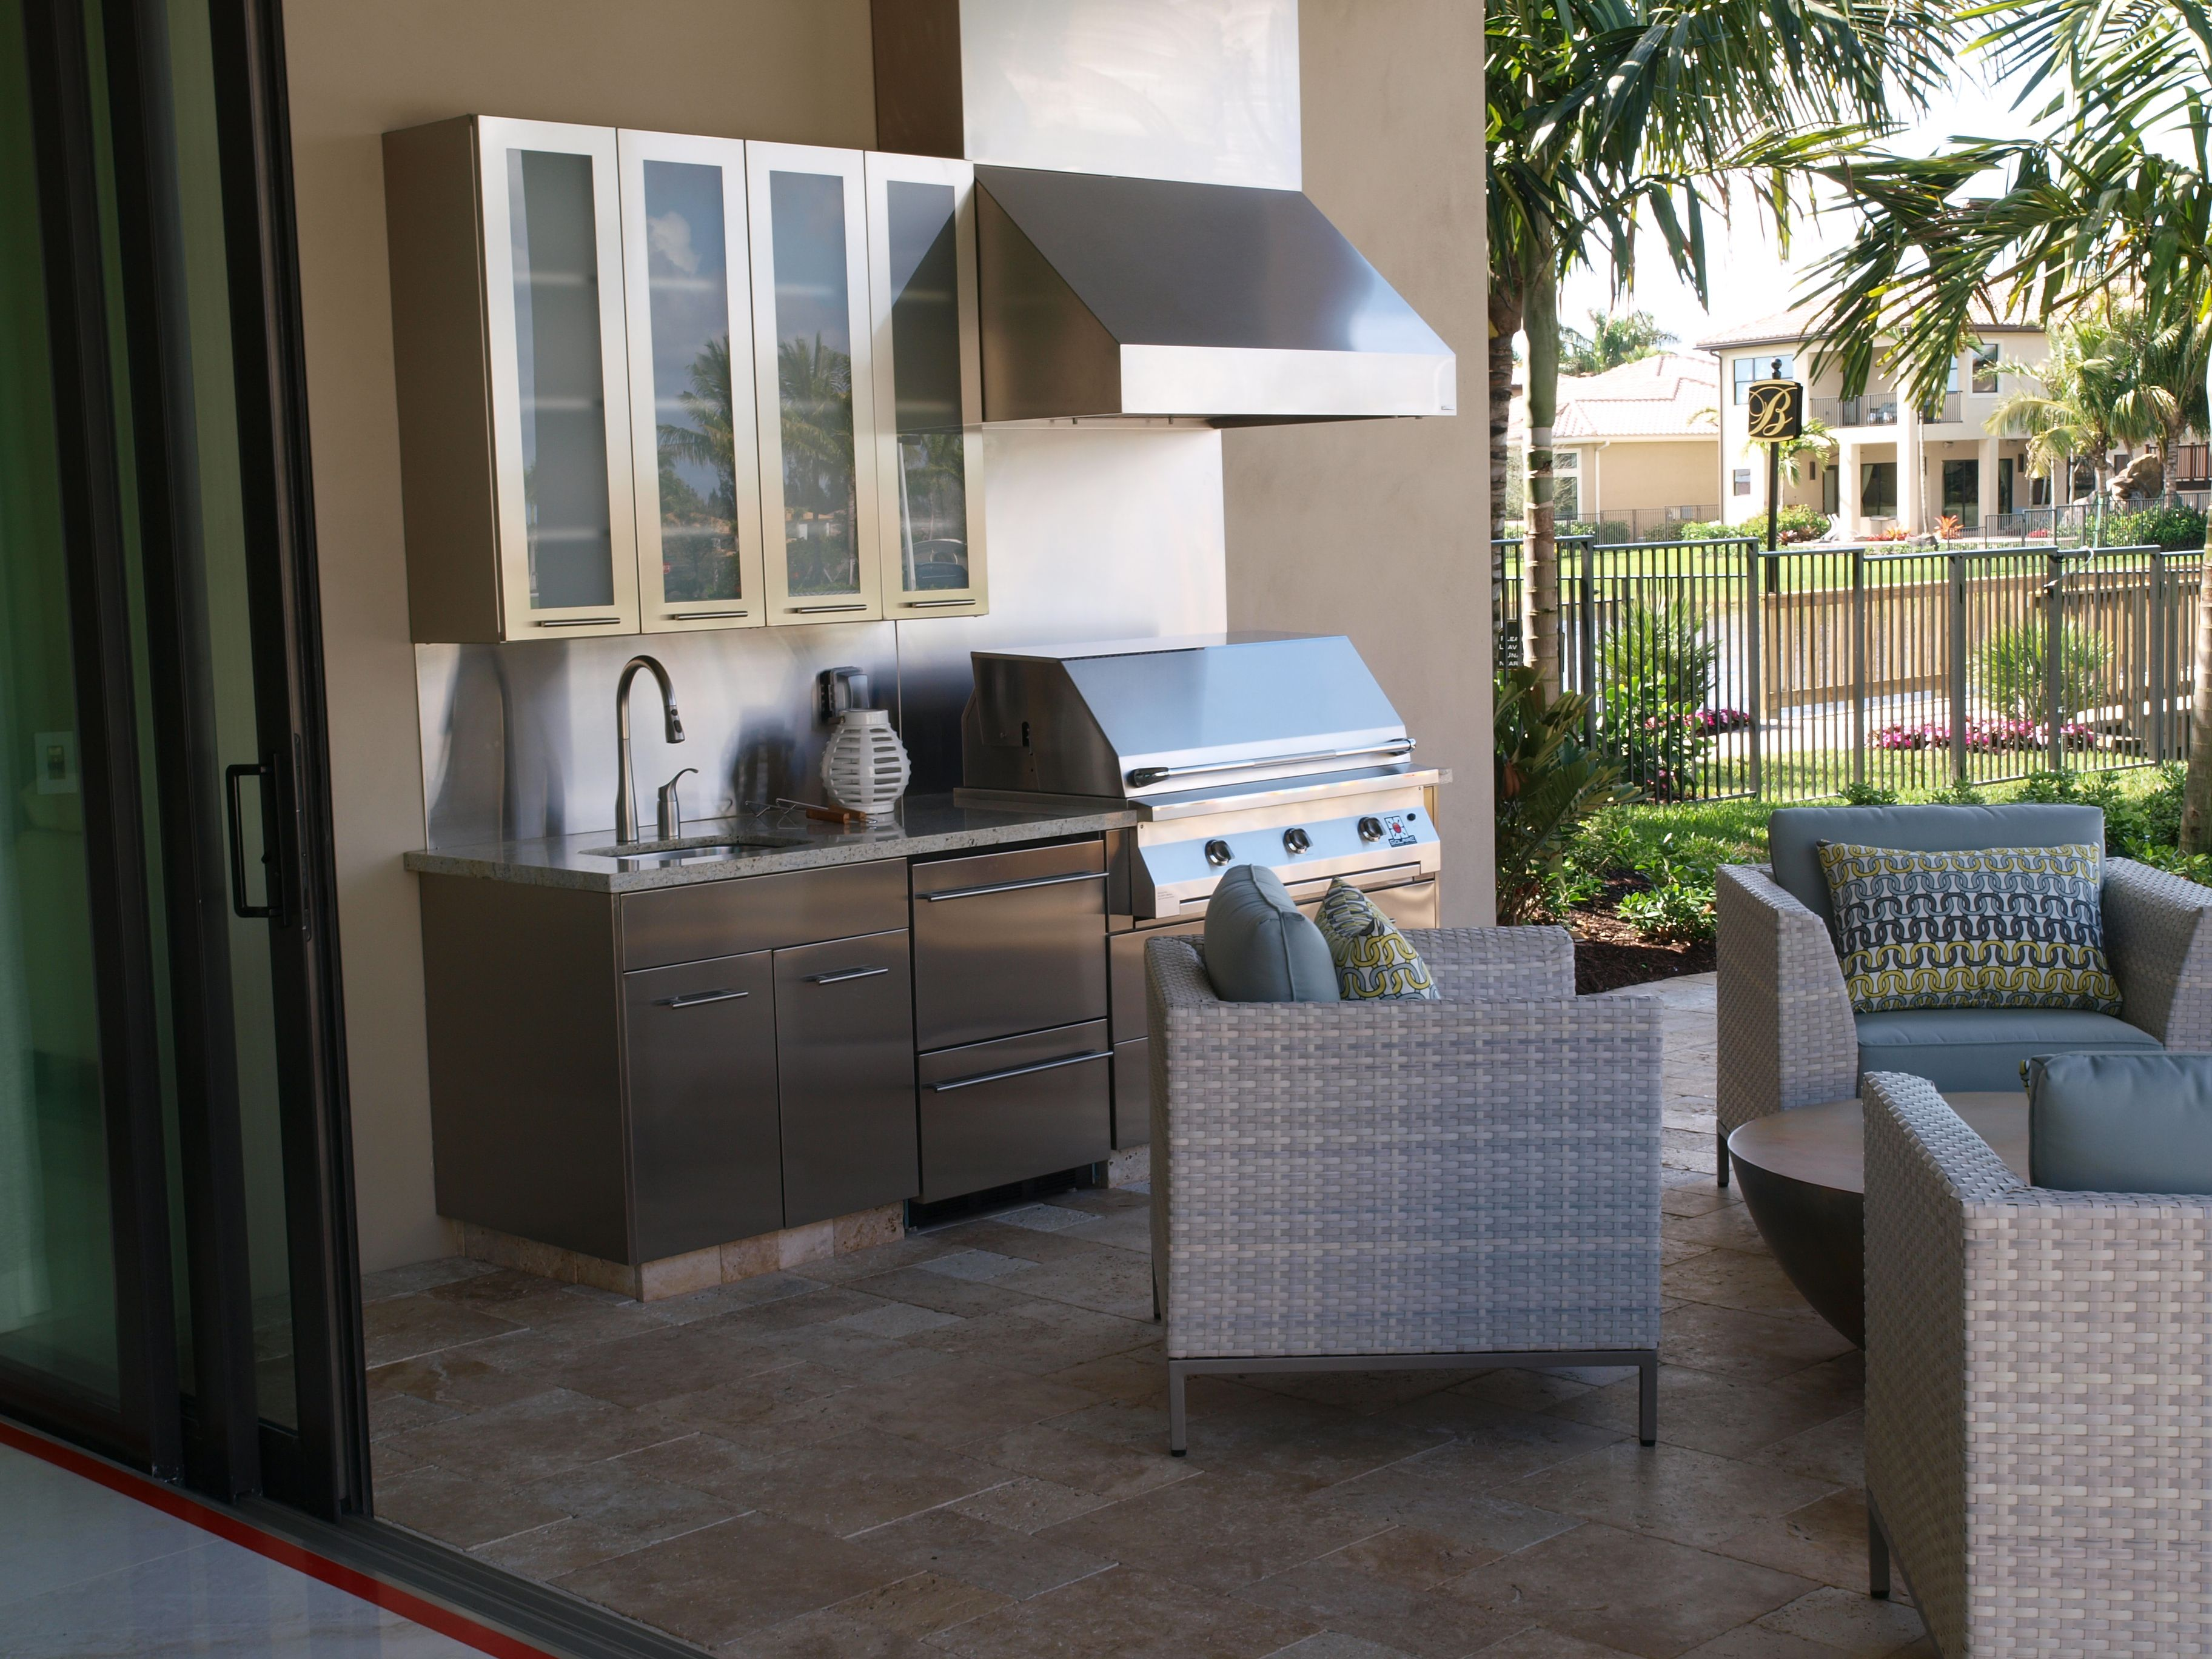 This Project Comes From Miami Florida And Features The Standard Hampton Door Style With The Clear Outdoor Kitchen Design Outdoor Kitchen Outdoor Living Space